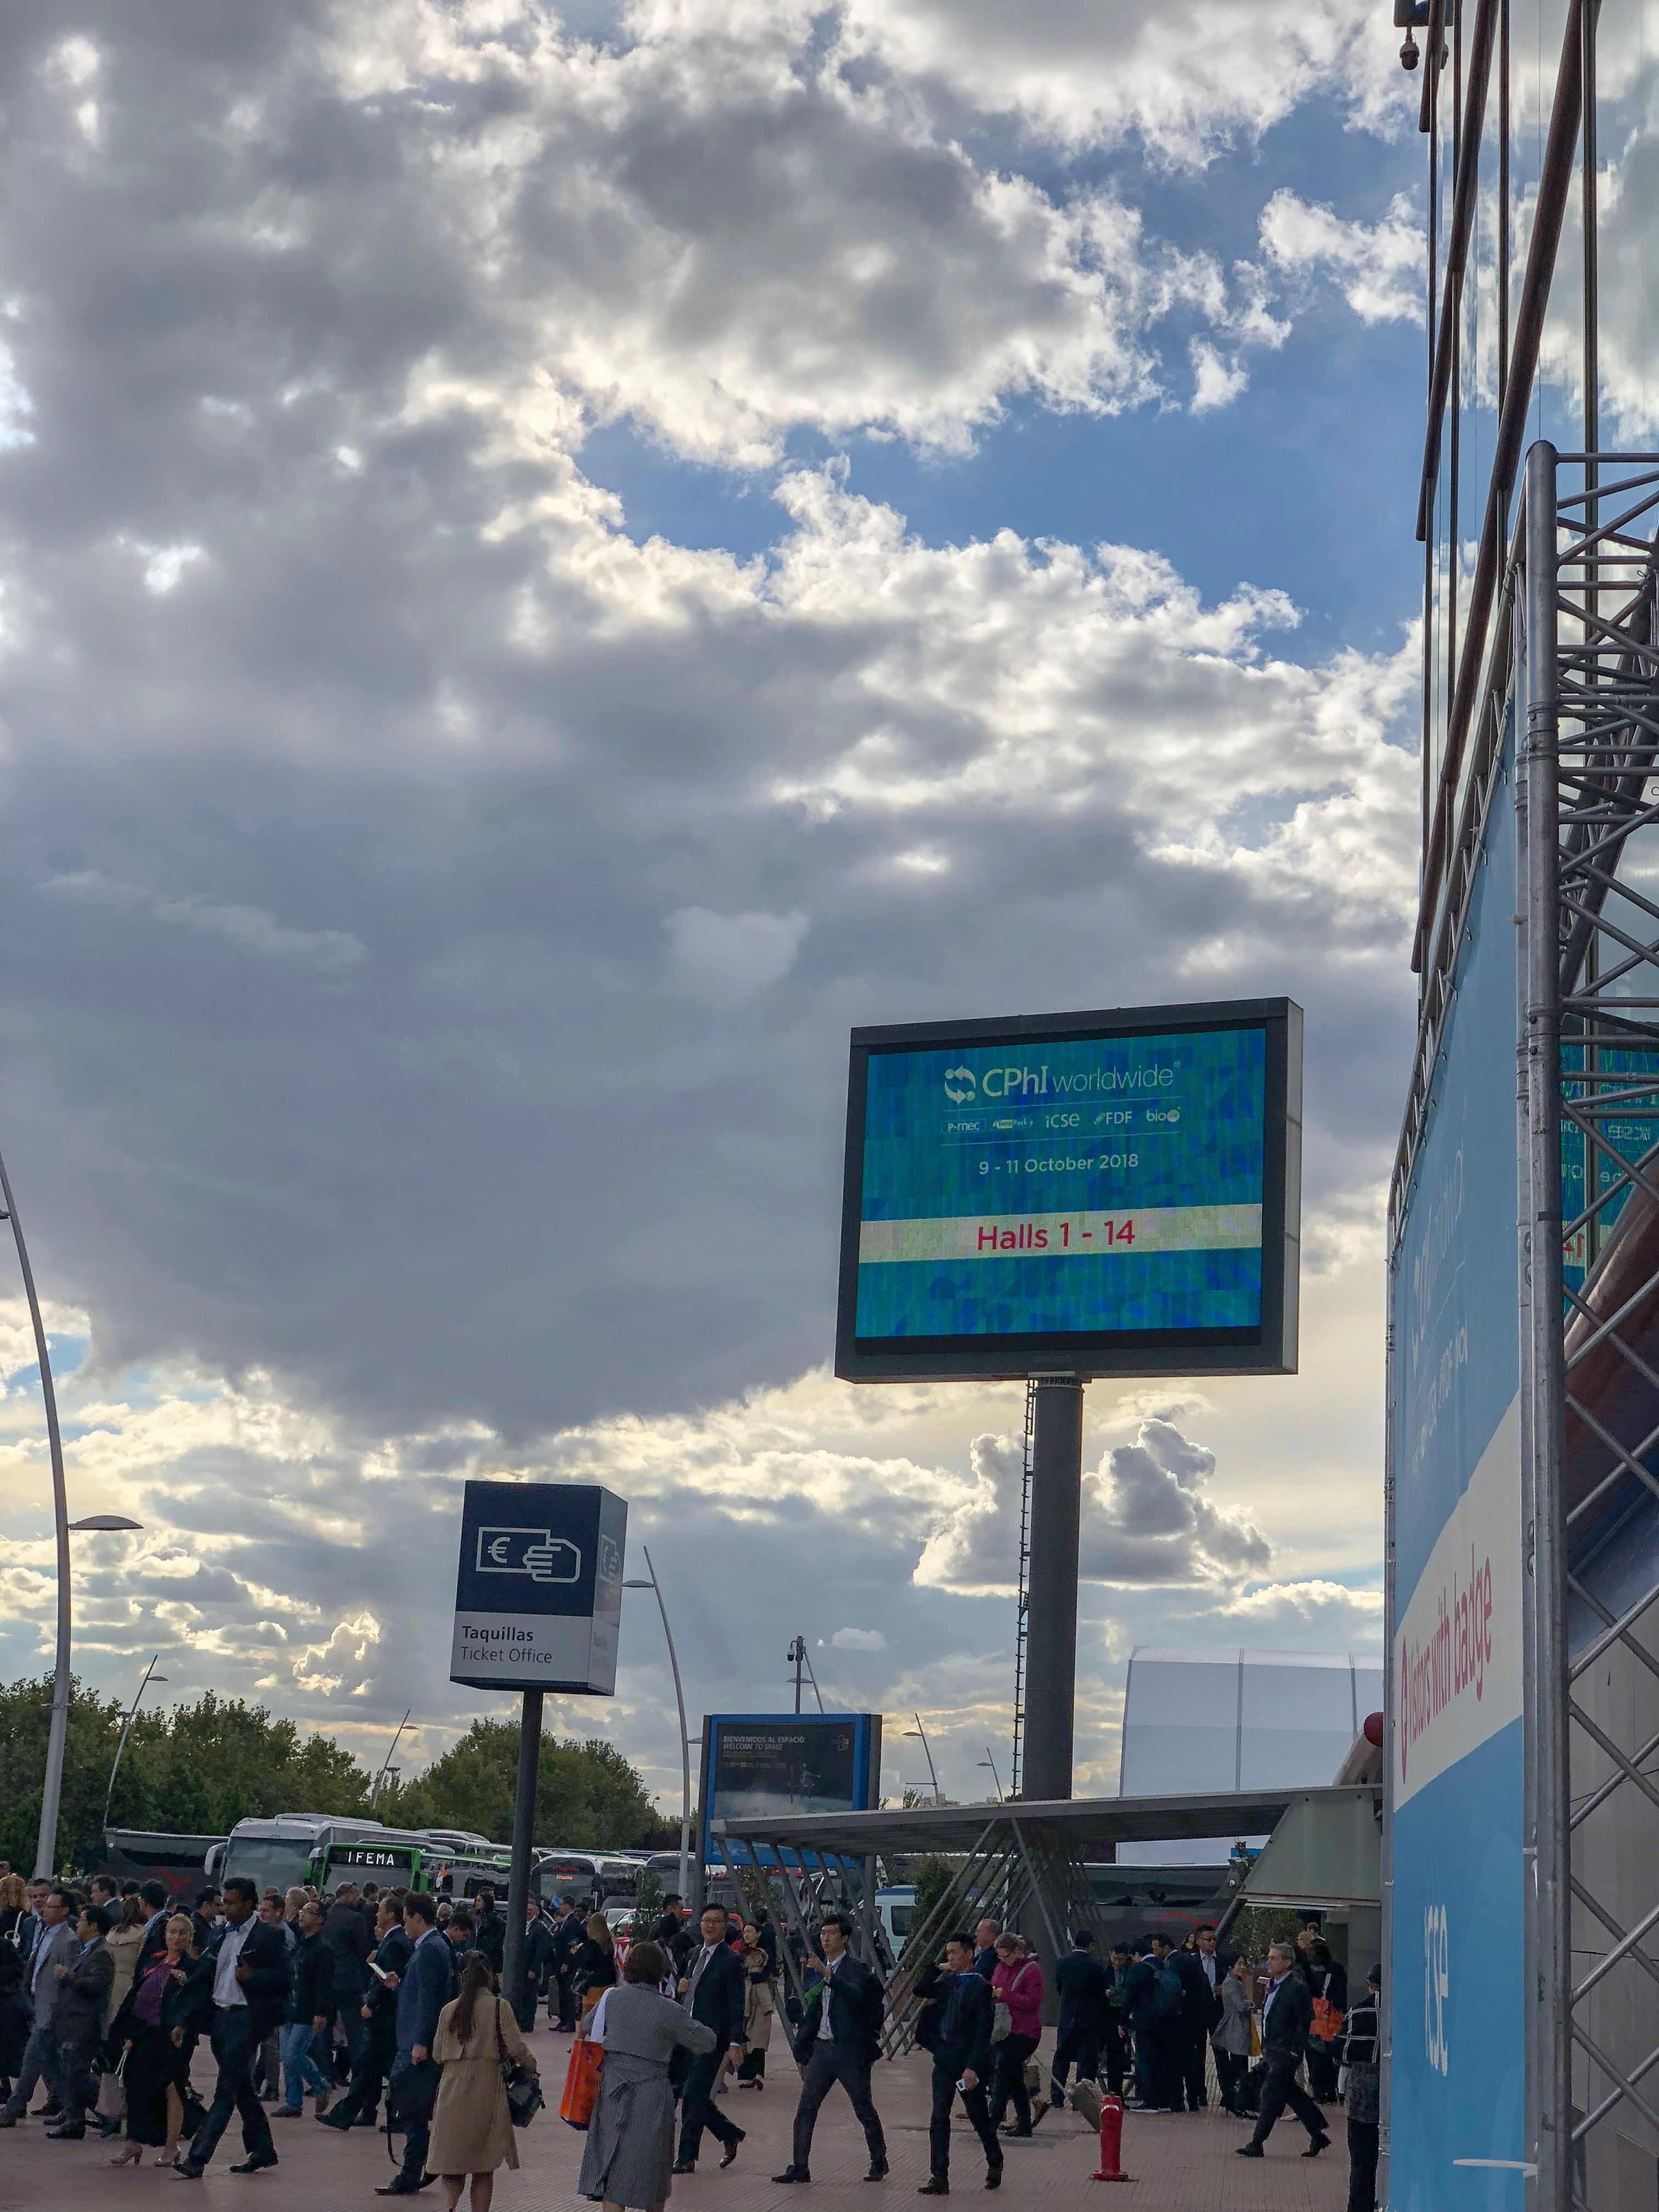 Large billboard sign at IFEMA Madrid for CPhI Worldwide 2018 Conference